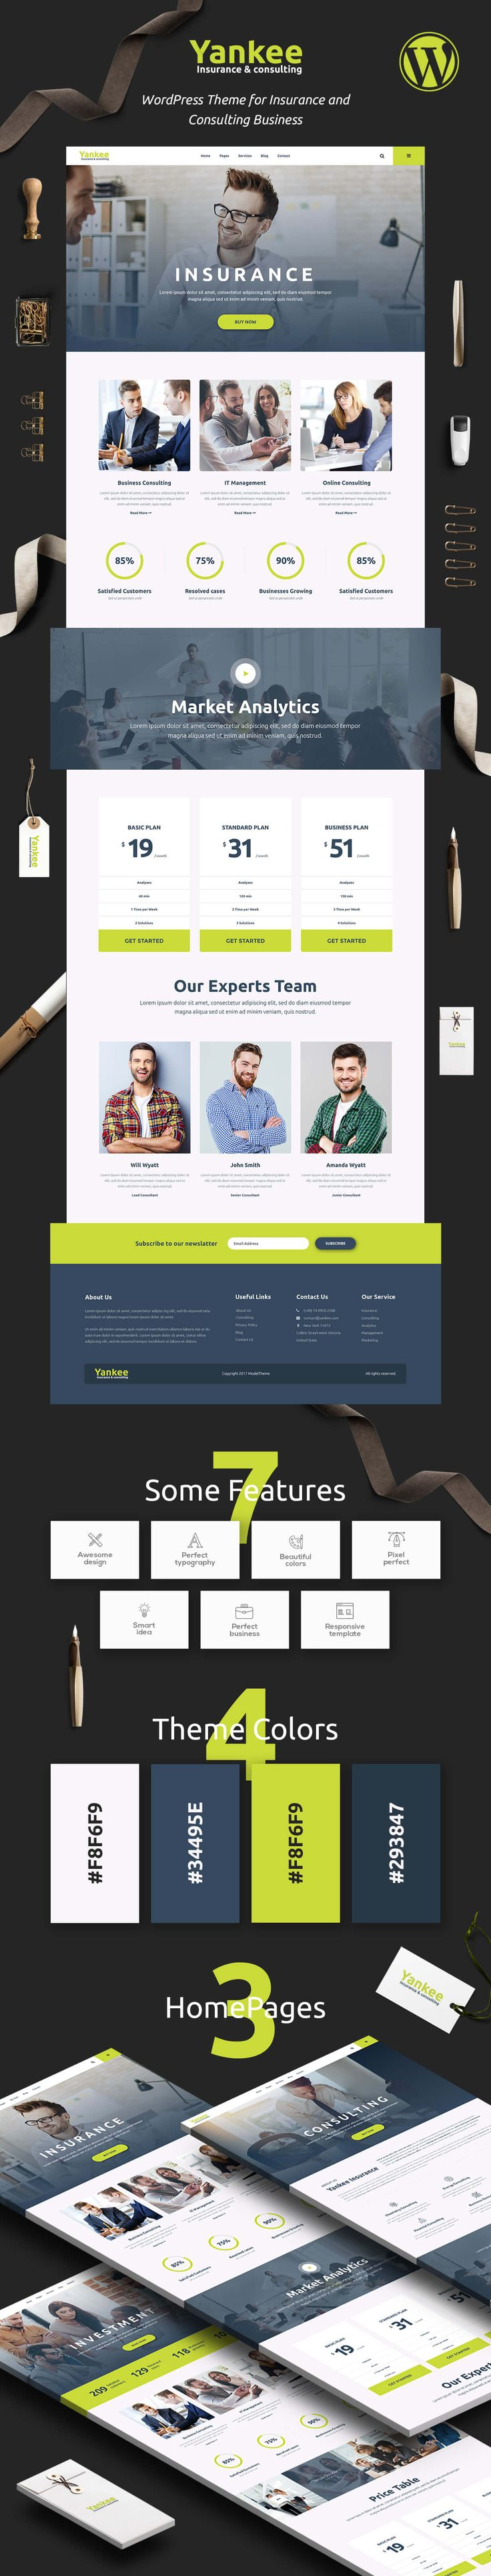 Yankee - Insurance & Consulting WordPress Theme by modeltheme | ThemeForest